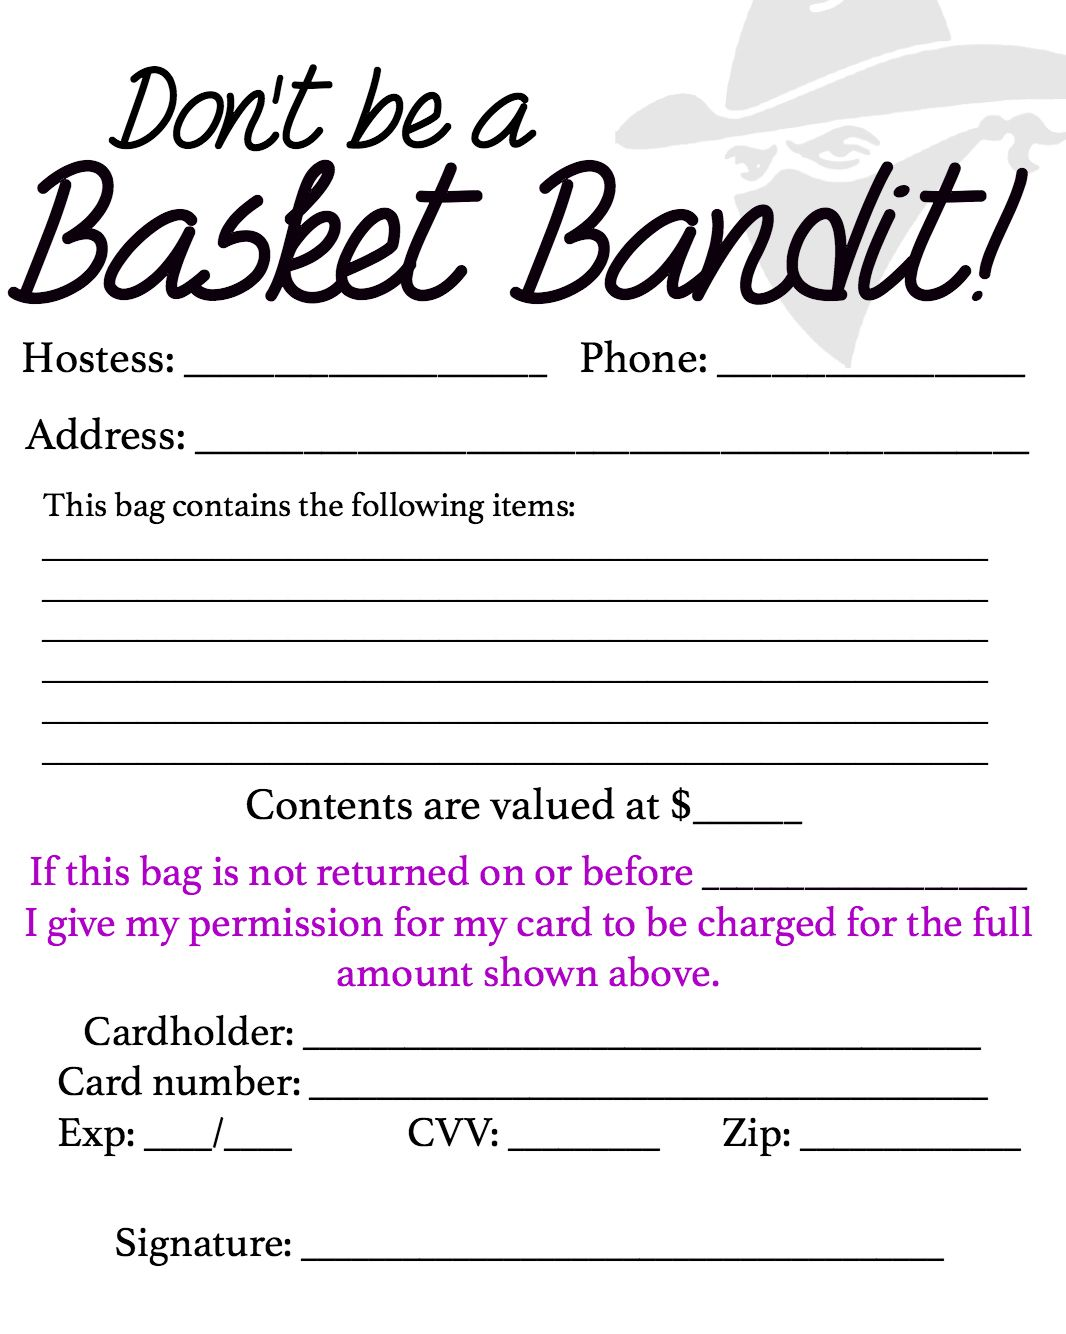 Basket party contract for Paparazzi jewelry gift basket